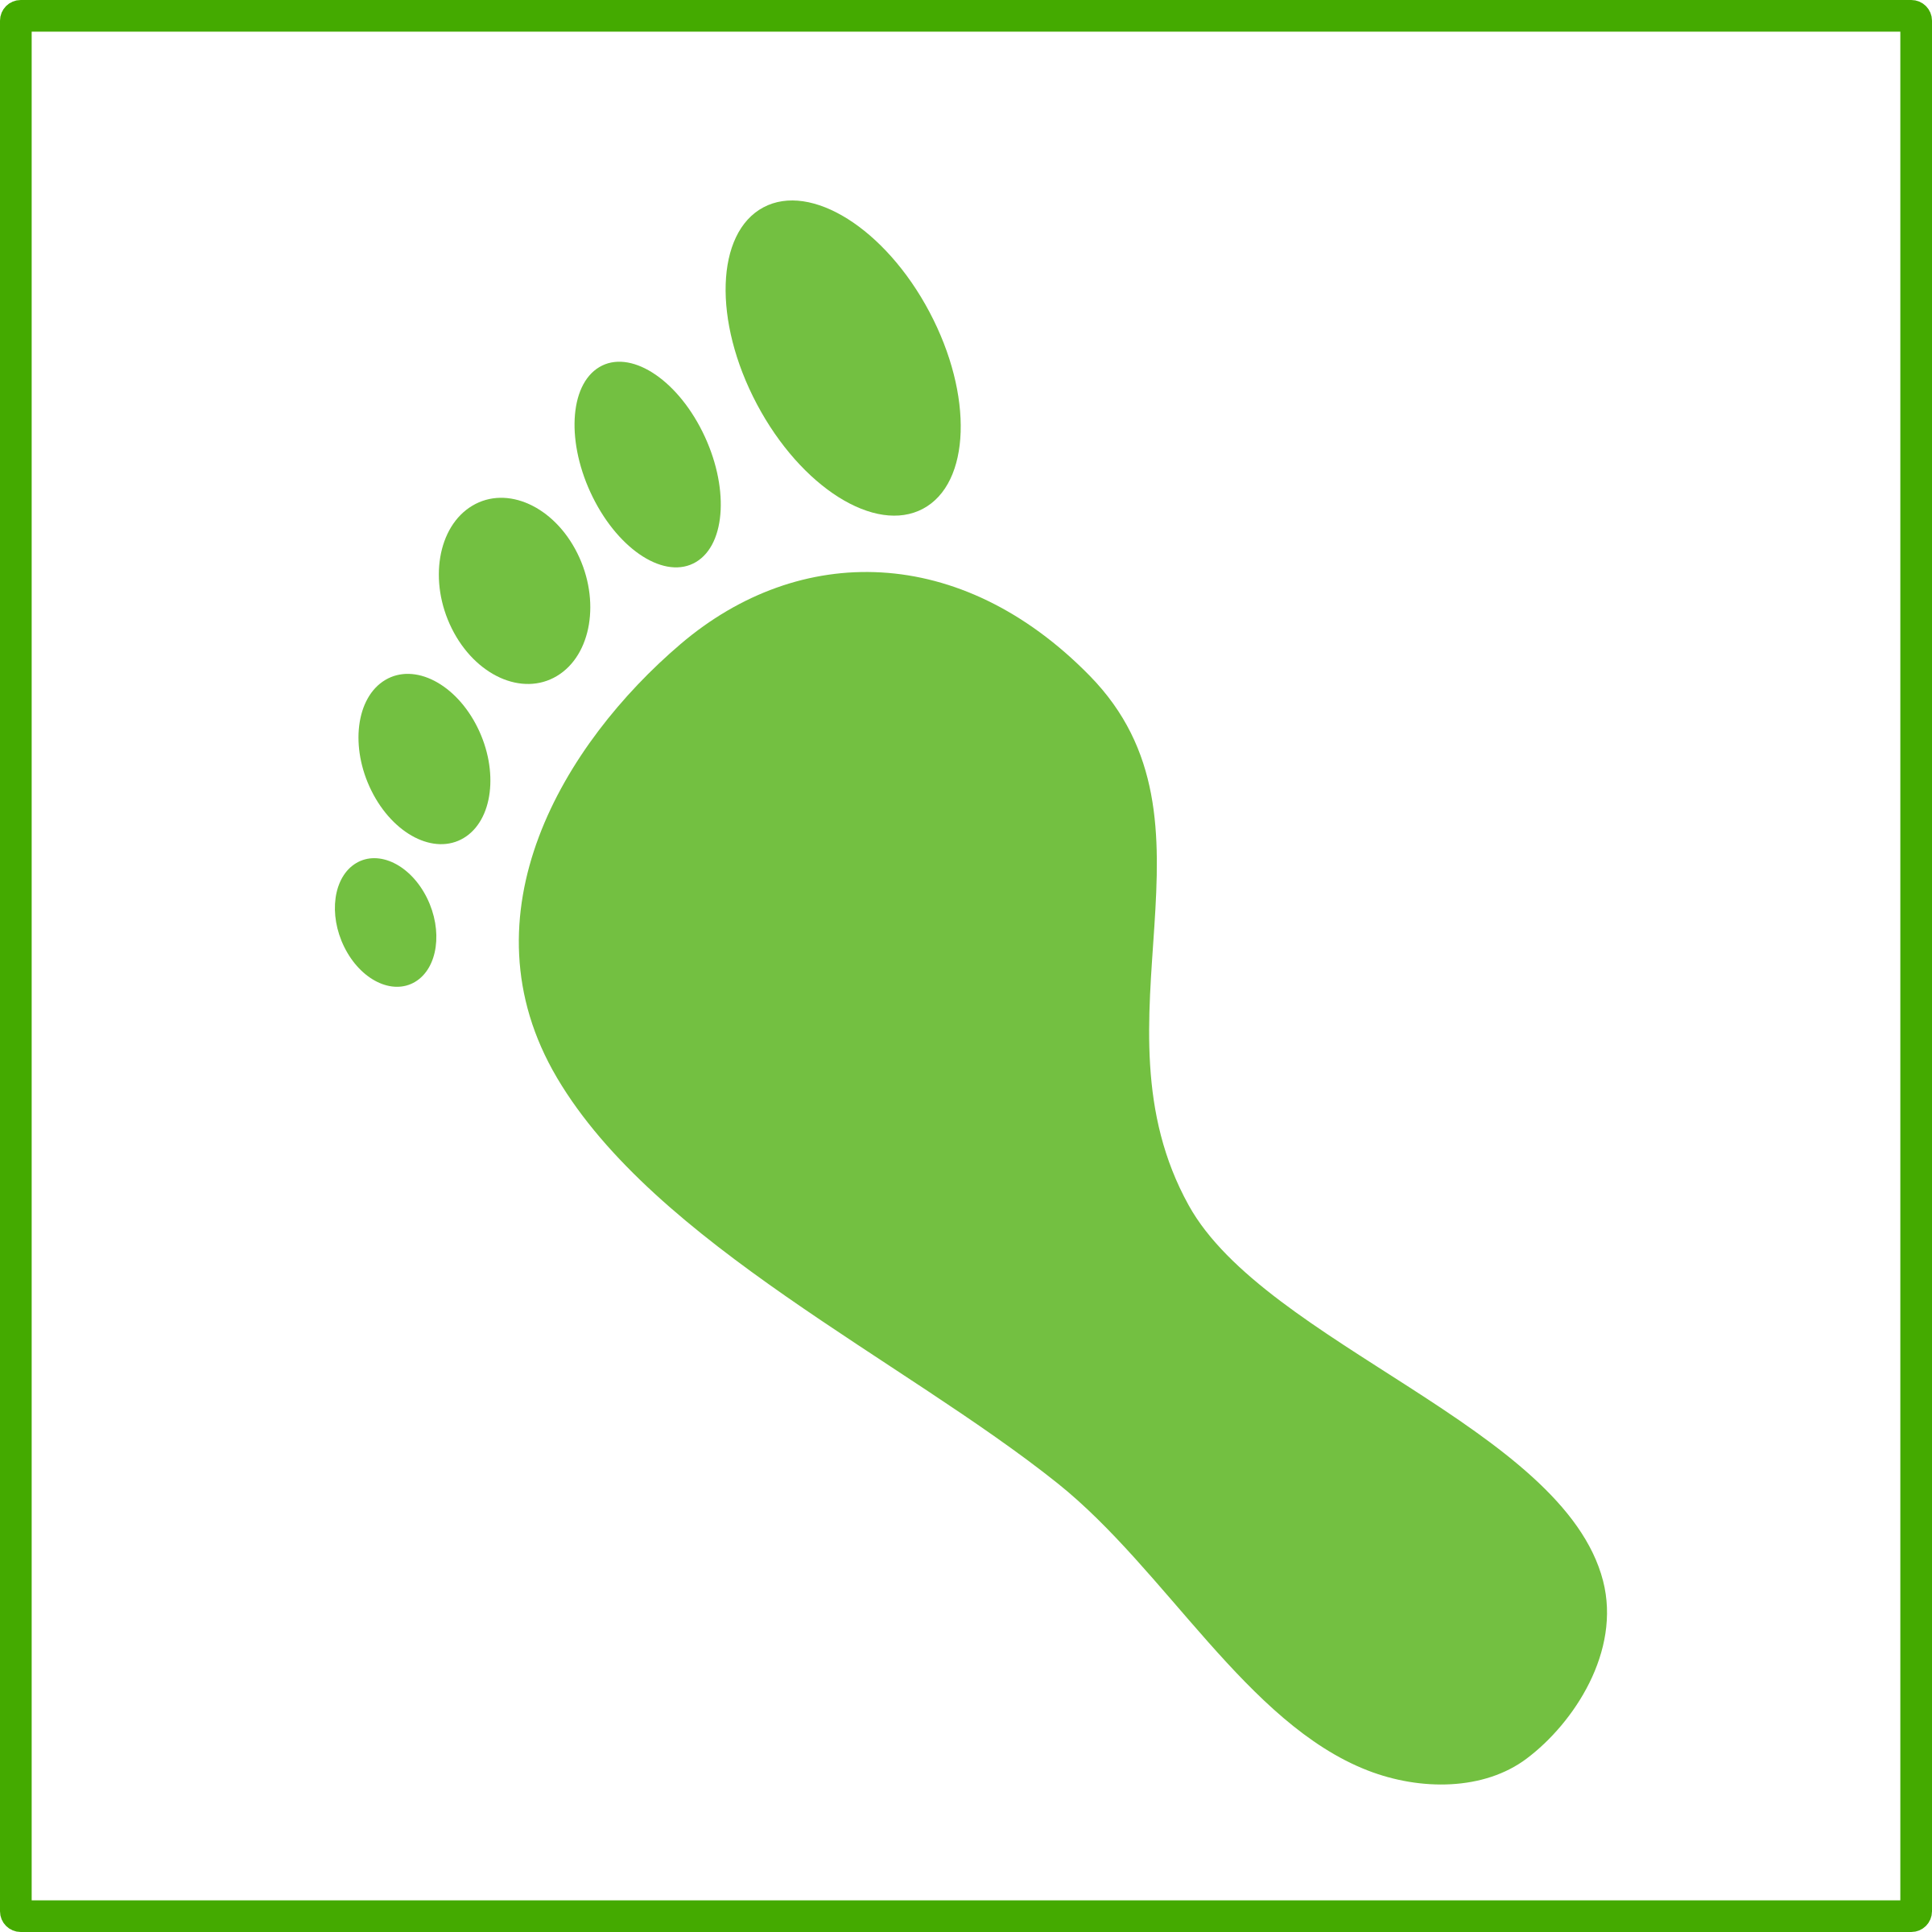 Footprint clipart travel. Eco green carbon icon